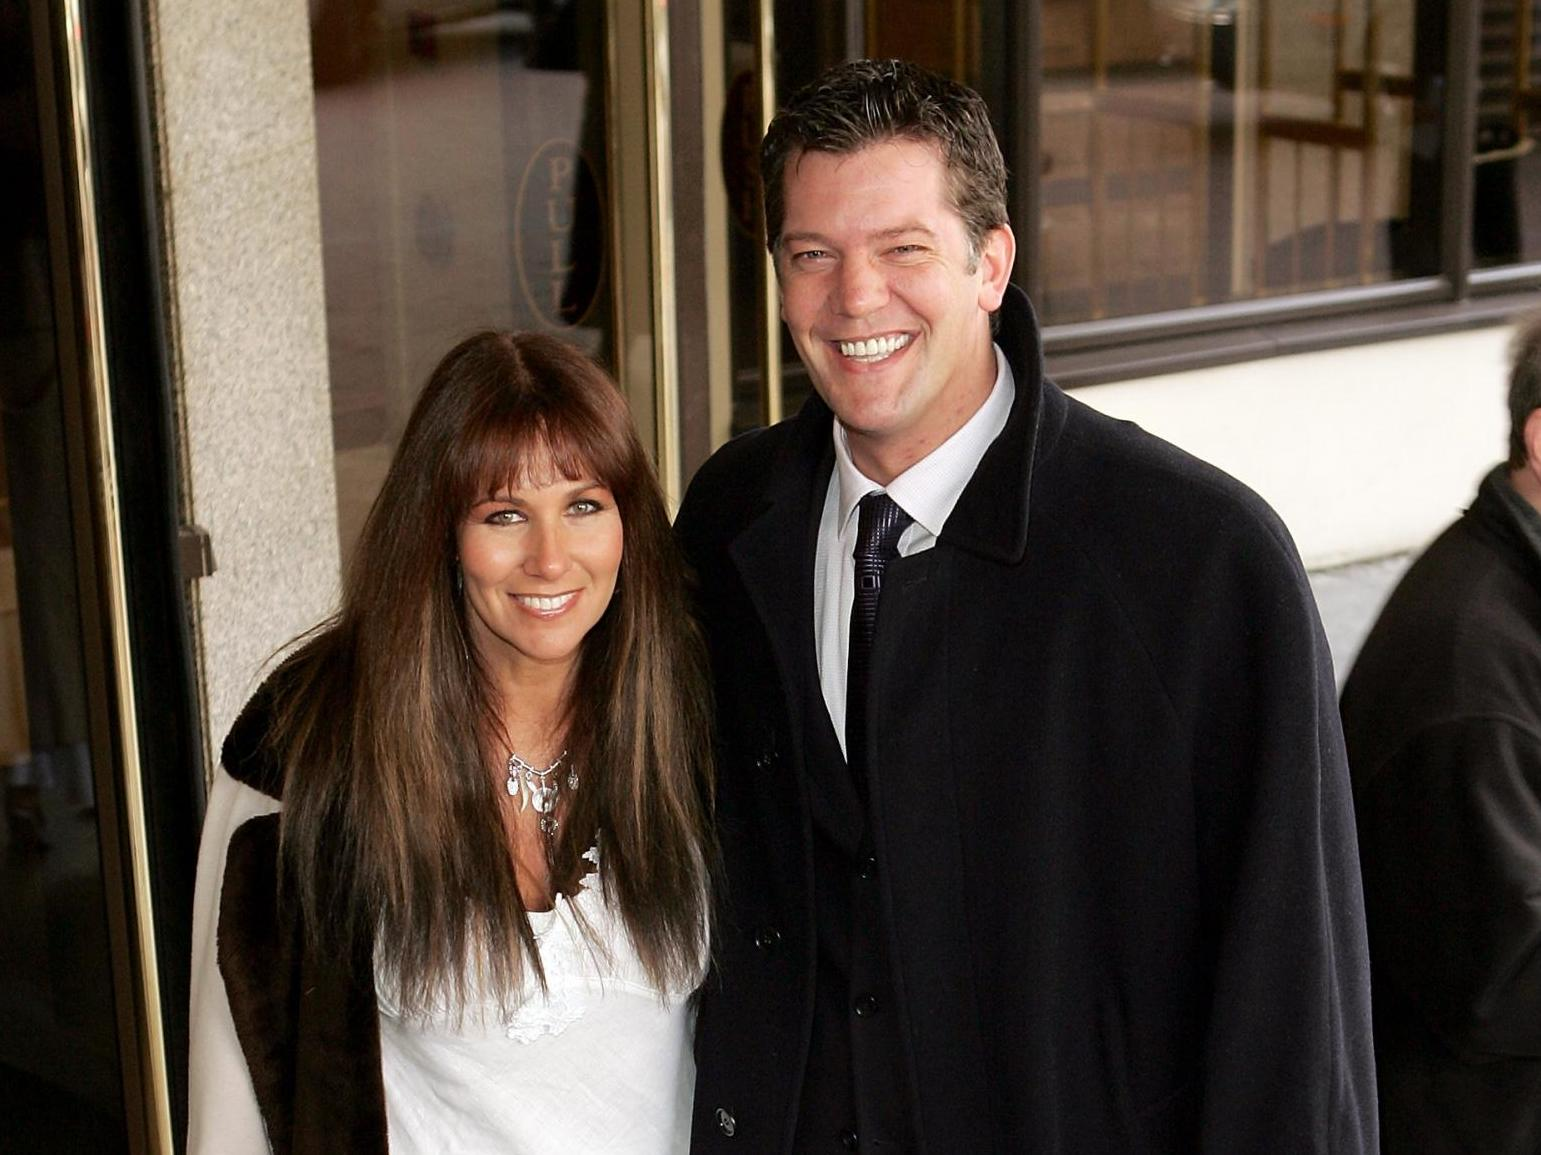 Linda Lusardi's husband heaps praise on NHS after wife released from hospital